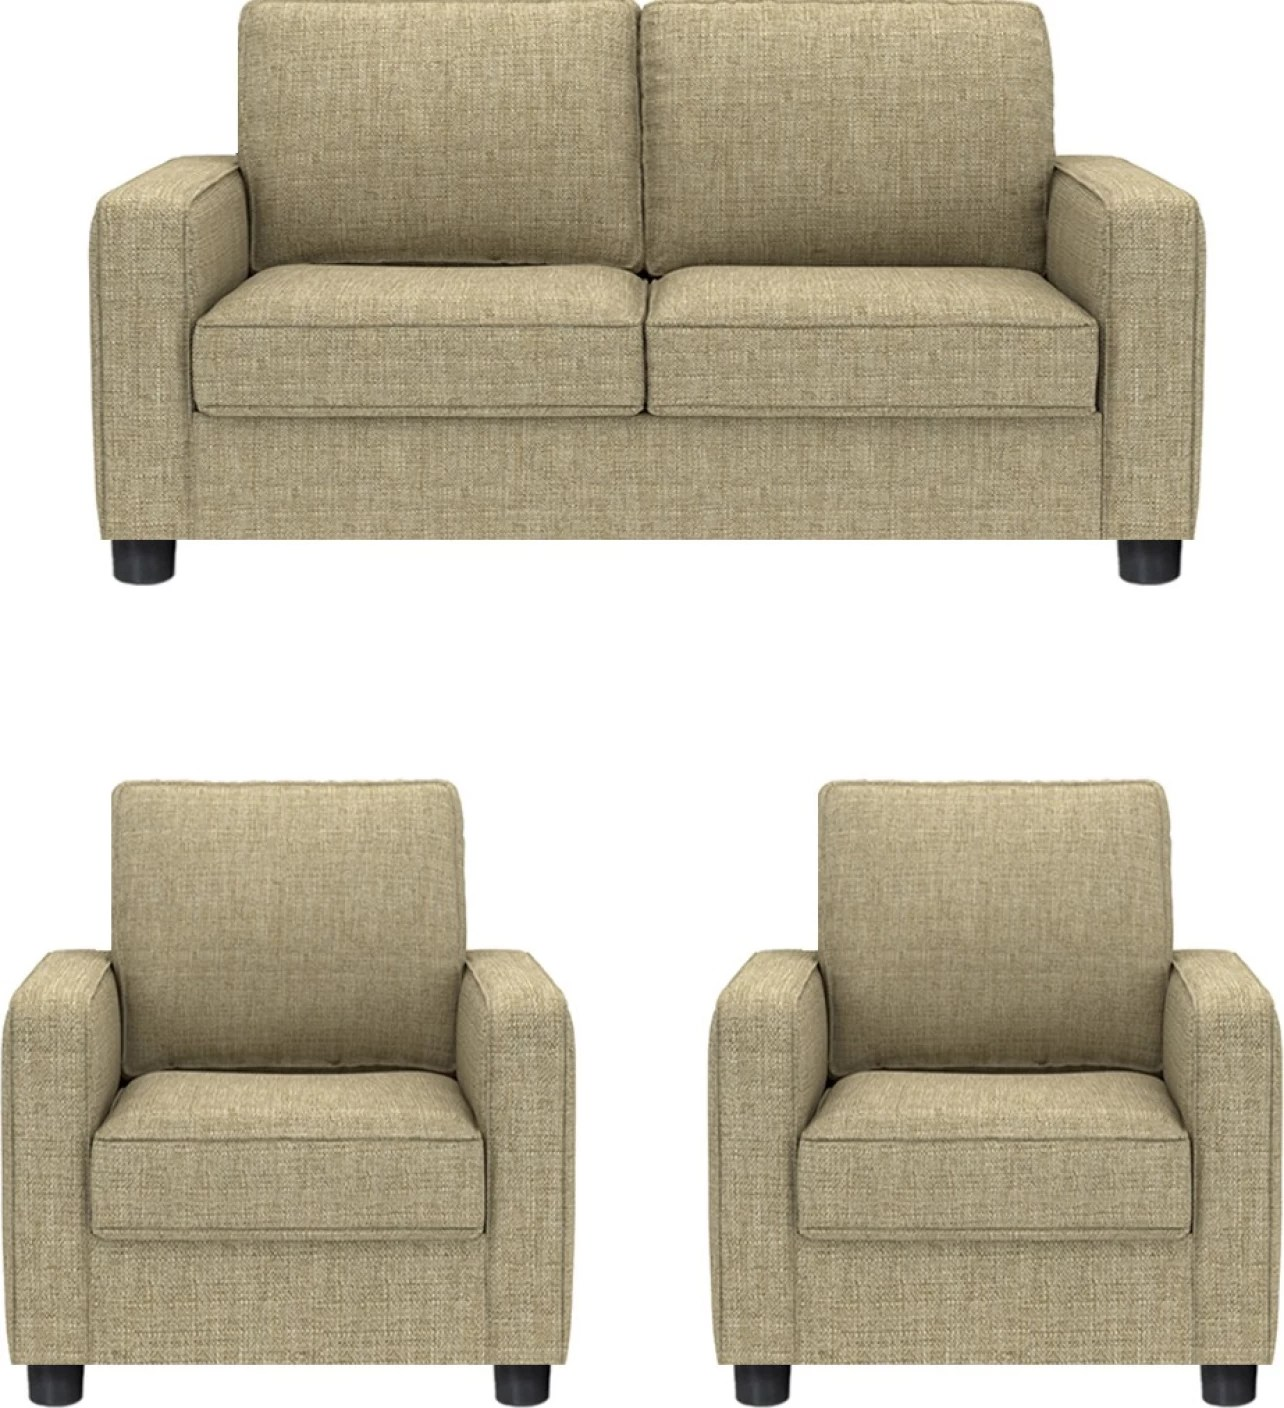 Sofa Set Price Haldwani Gioteak Fabric 2 43 1 43 1 Beige Sofa Set Price In India